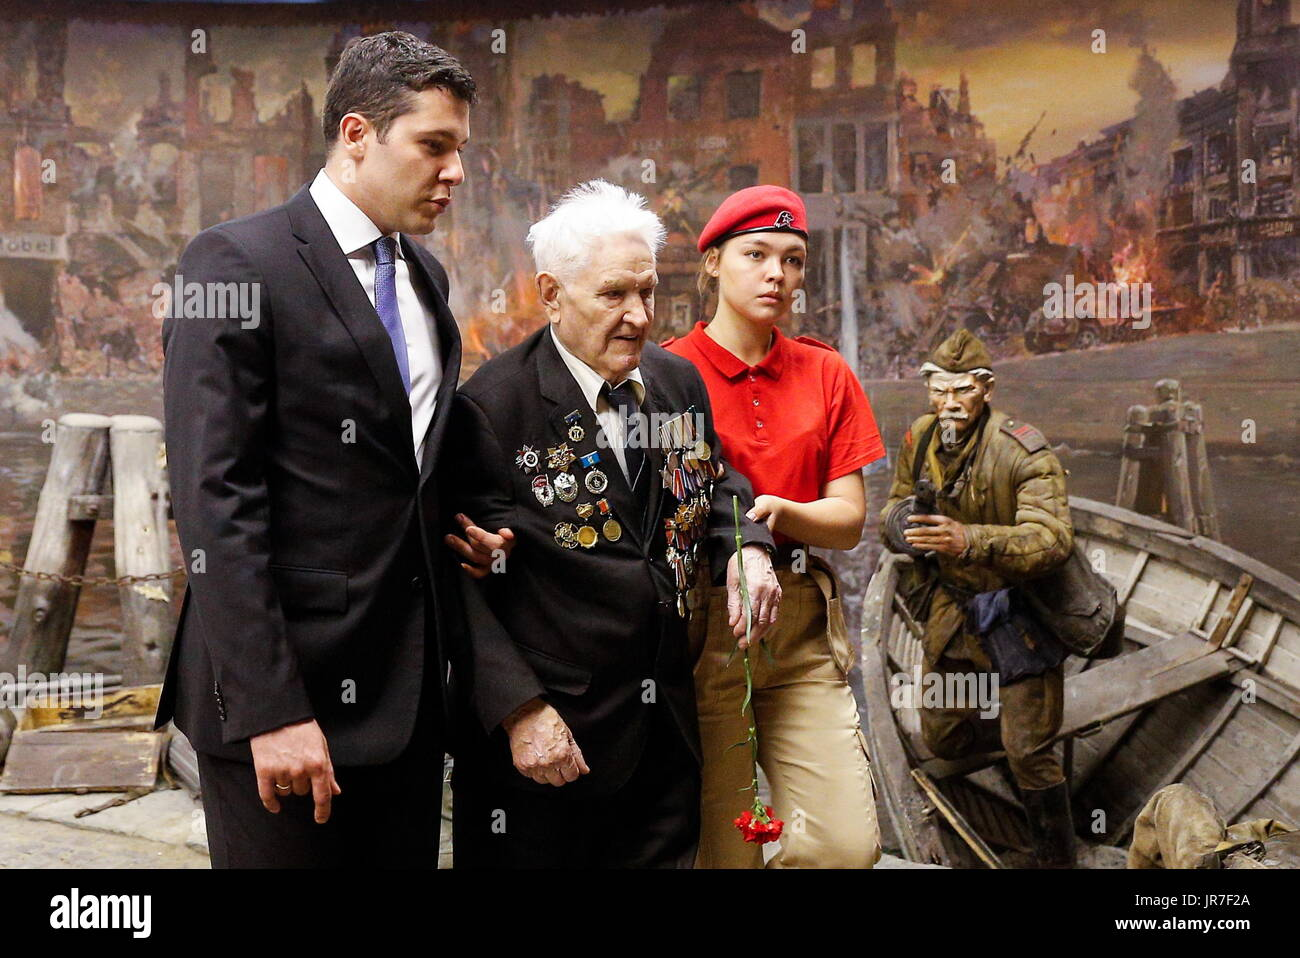 Kaliningrad Region, Russia. 3rd Aug, 2017. The acting governor of Kaliningrad Region, Anton Alikhanov (L), and war veteran Ivan Tikhonov (C) who took part in the final assault on Konigsberg in 1945, view a 3-dimensional panoramic exhibition titled 'Konigsberg 1945: the Final Assault' at the Kaliningrad Region Museum of History and Arts; the 360-degree display, which depicts the April 1945 assault by the Red Army on the city of Konigsberg in WWII, is an artwork by the Nevsky Batalist team led by Dmitry Poshtarenko. Credit: Vitaly Nevar/TASS/Alamy Live News - Stock Image